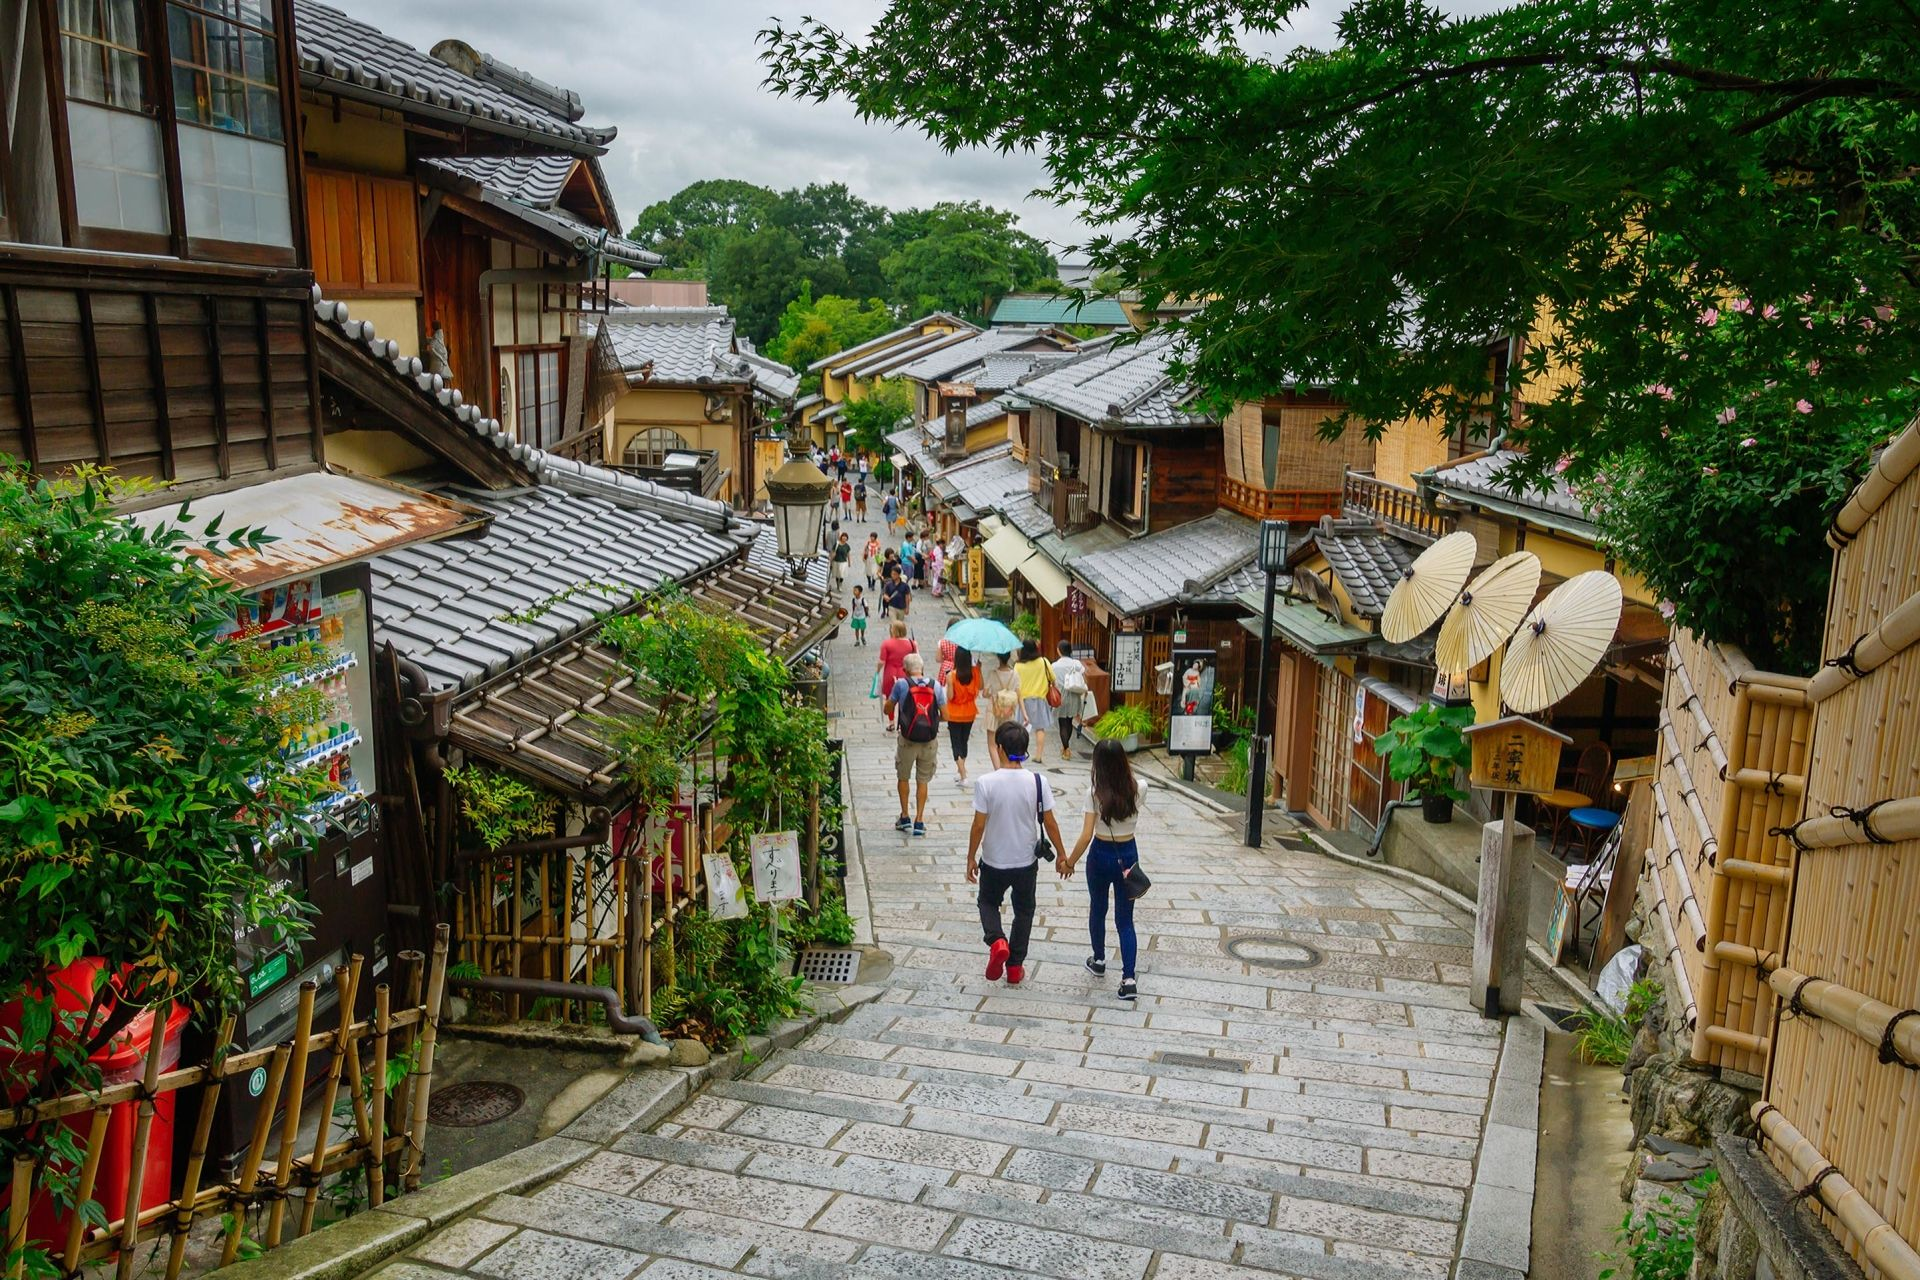 Kyoto, Japan - July 23, 2015: Tourists are enjoying on the Sannen-Zaka, Kyoto famous preserved street on July 21 2015 which located in the Gion district. Many souvenir shops can be found here.